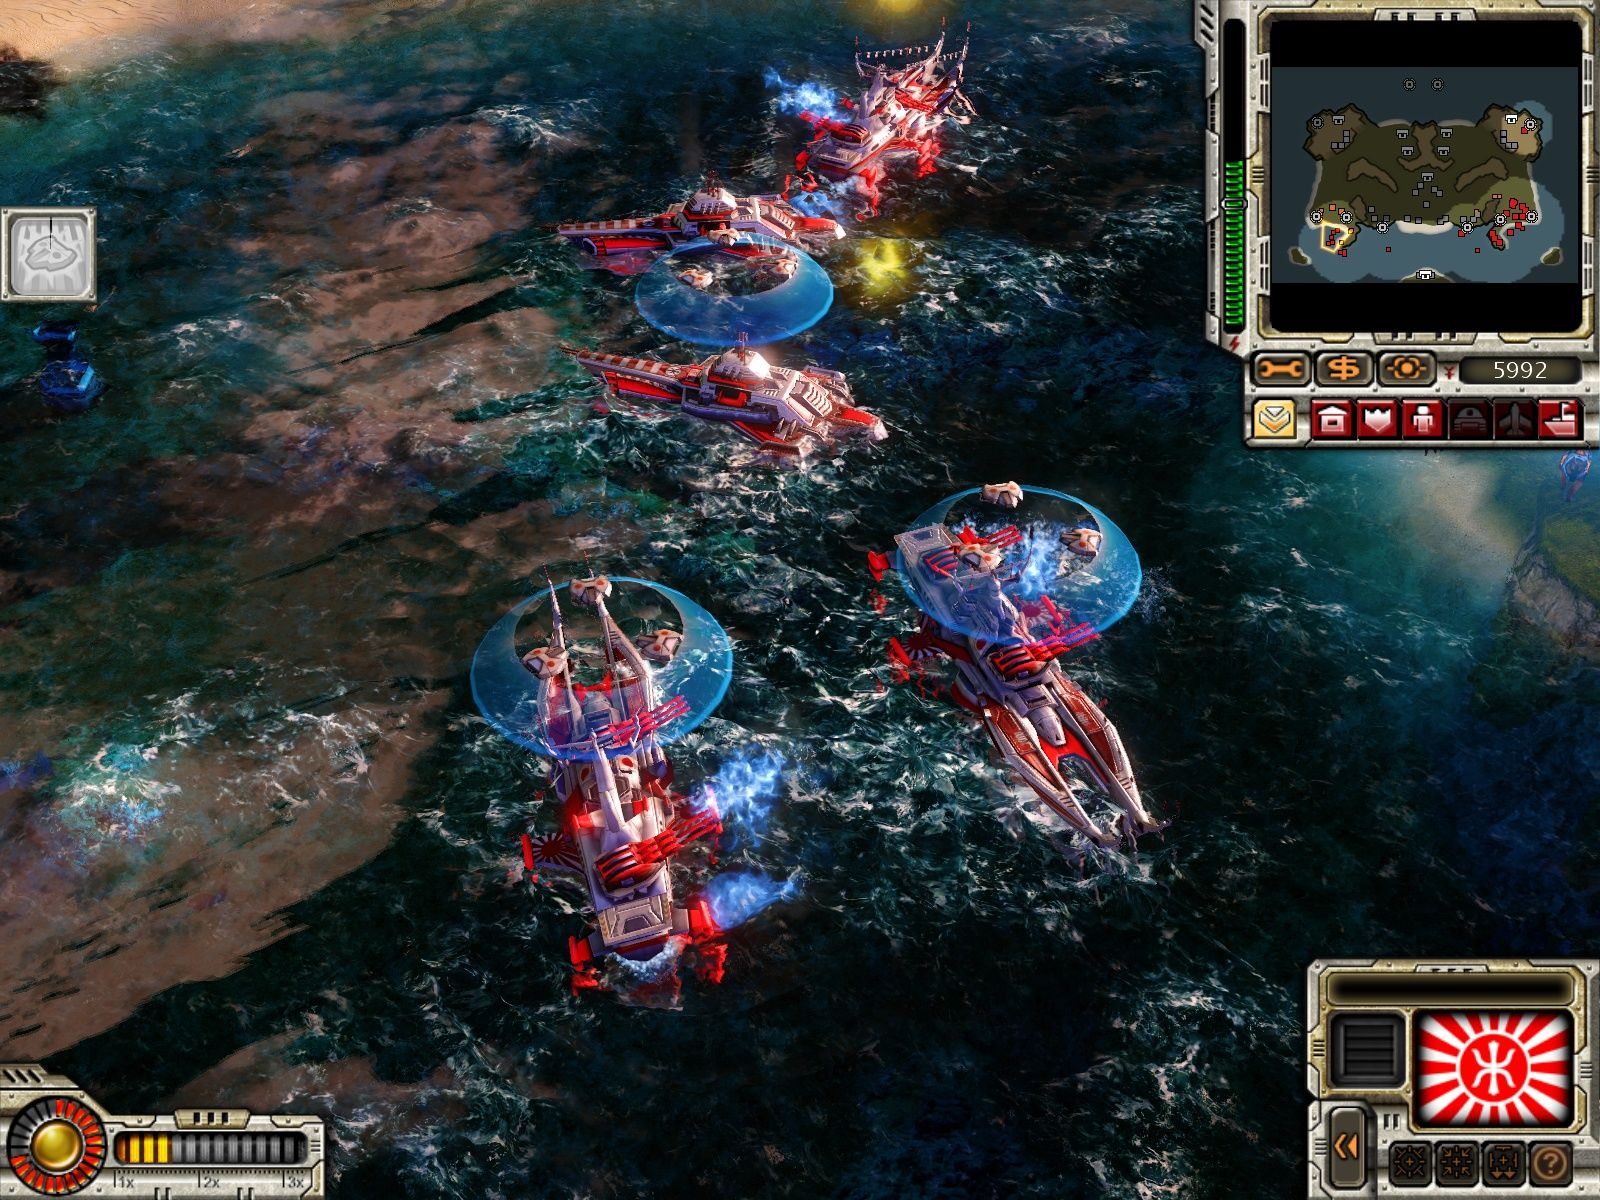 Command & Conquer: Red Alert 3 Windows Activated a special power that shields my ships.